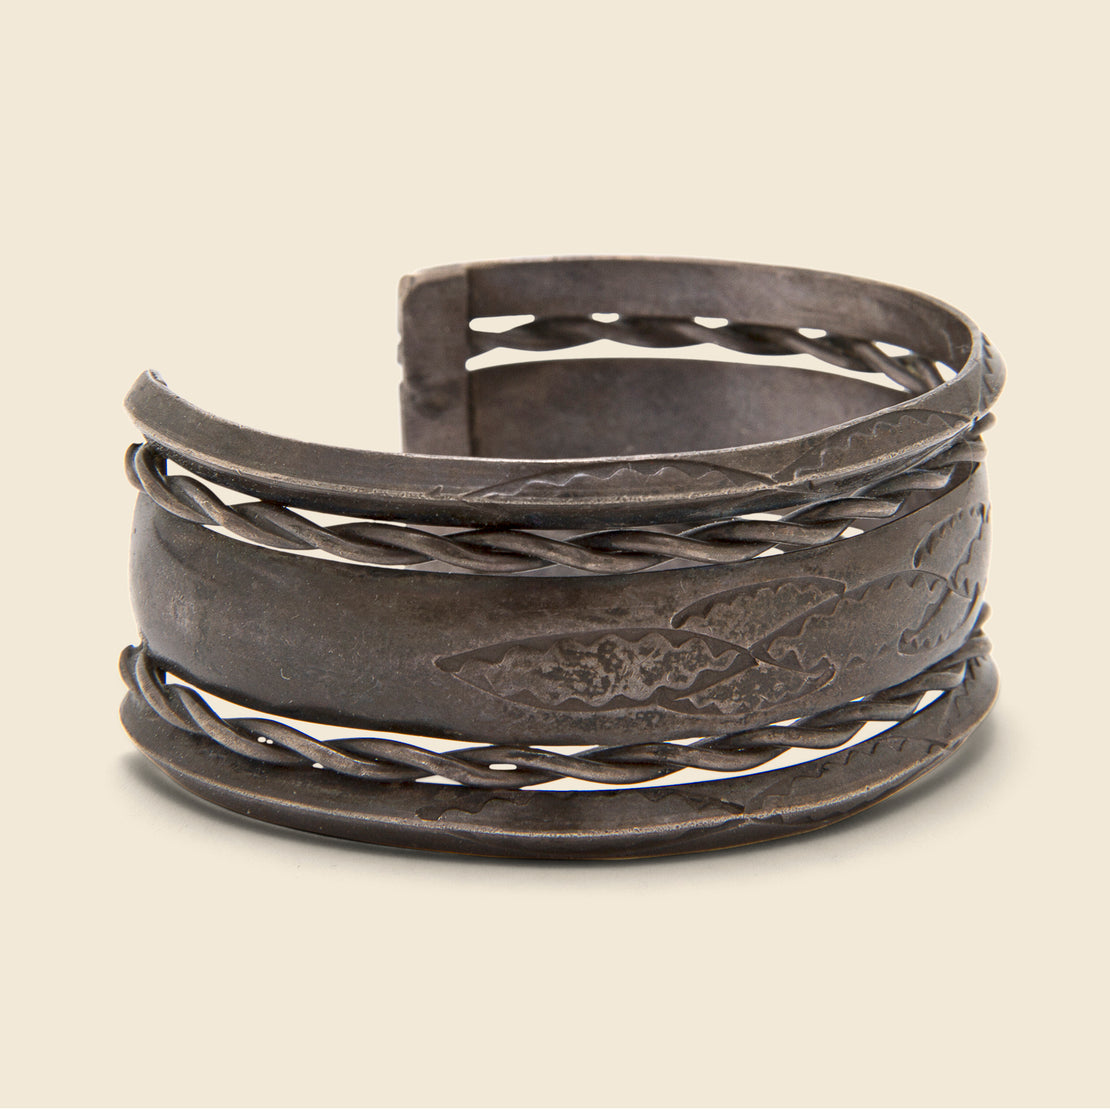 Carved & Stamped Sterling Silver Cuff